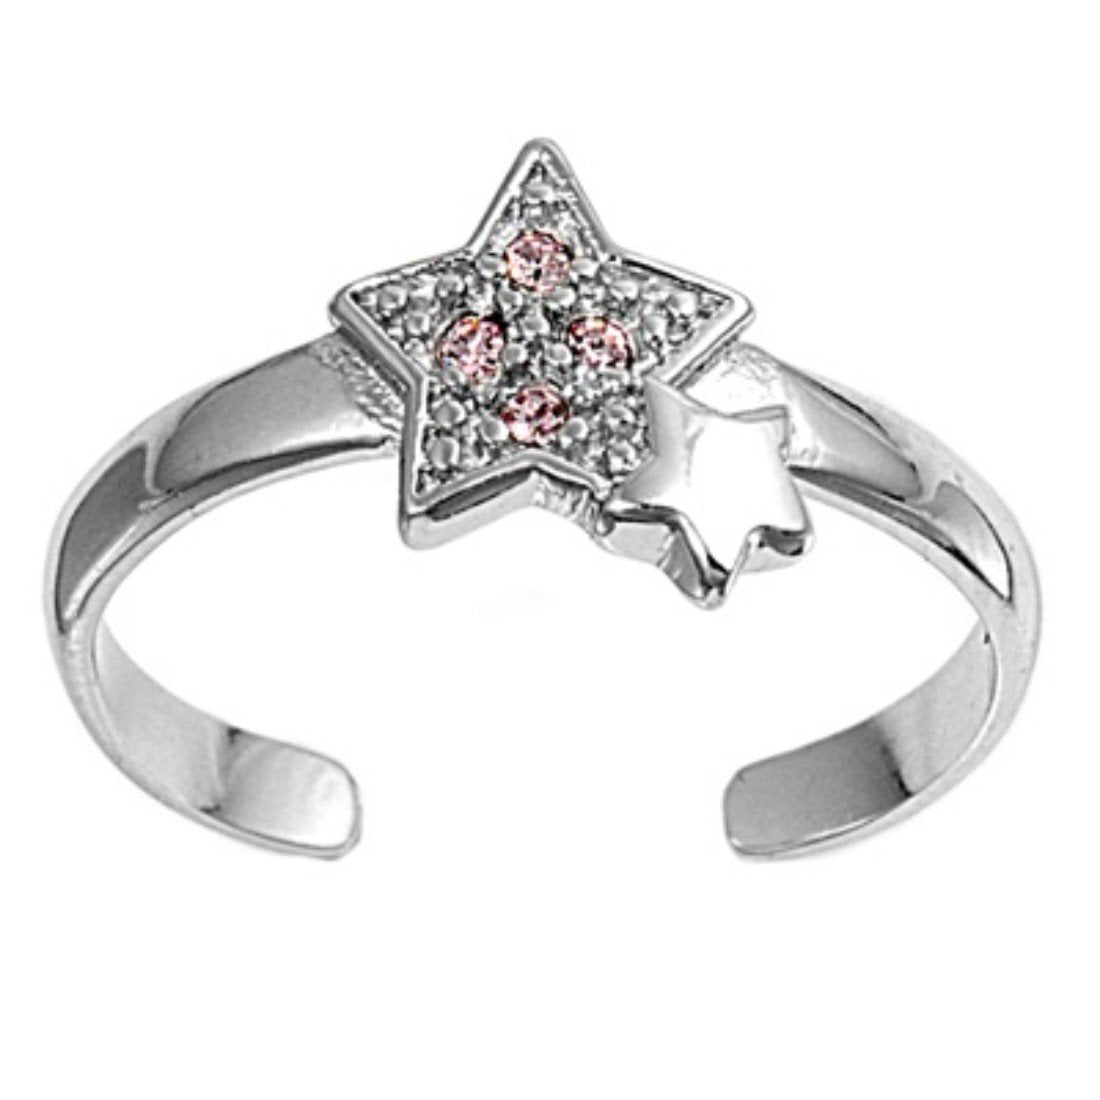 Silver Toe Ring Star Simulated Cubic Zirconia Adjustable 925 Sterling Silver (8mm)